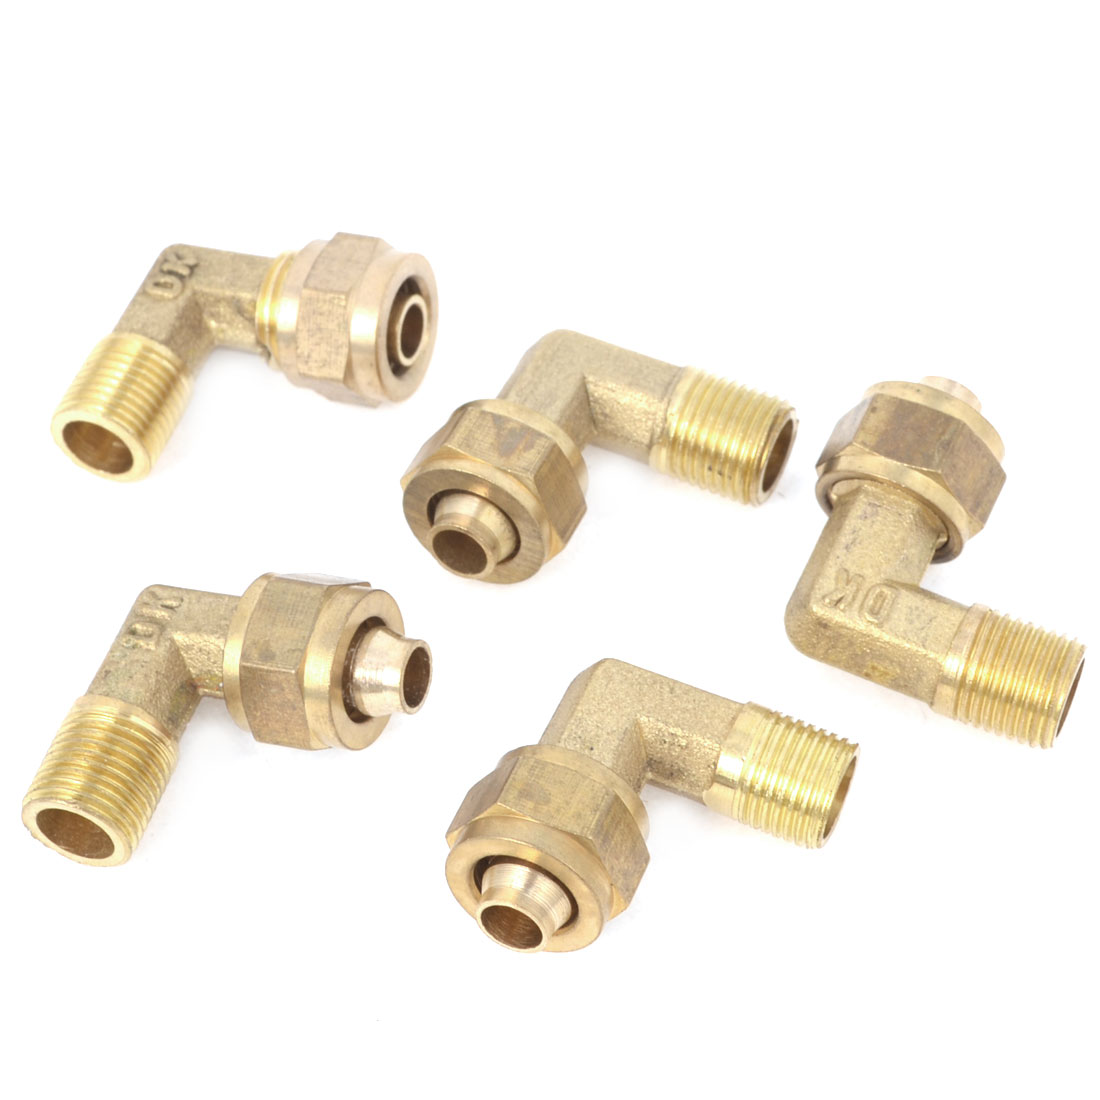 5 Pcs Brass 8mm x 6mm Hose Pneumatic Pipe Brass Quick Coupler Adaptor